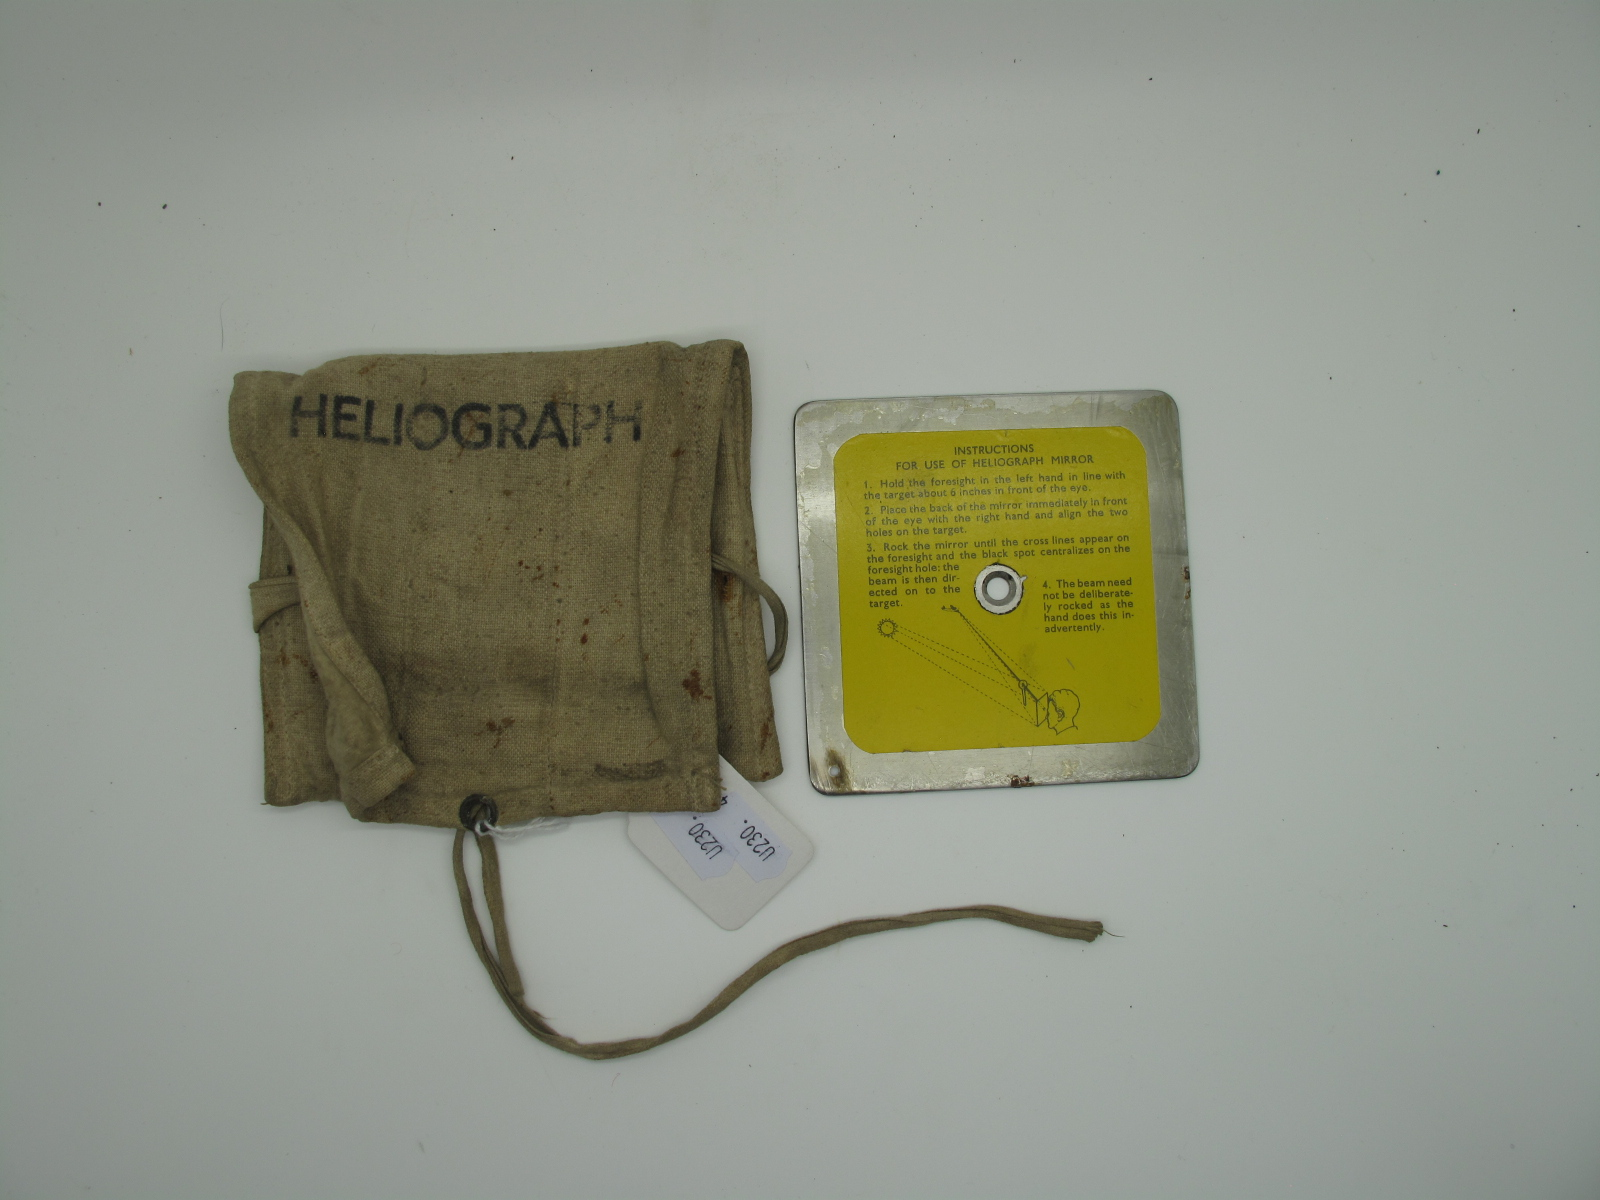 A WWII Era Heliograph Signal Mirror, in canvas 'Heliograph' bag, including instructional sticker